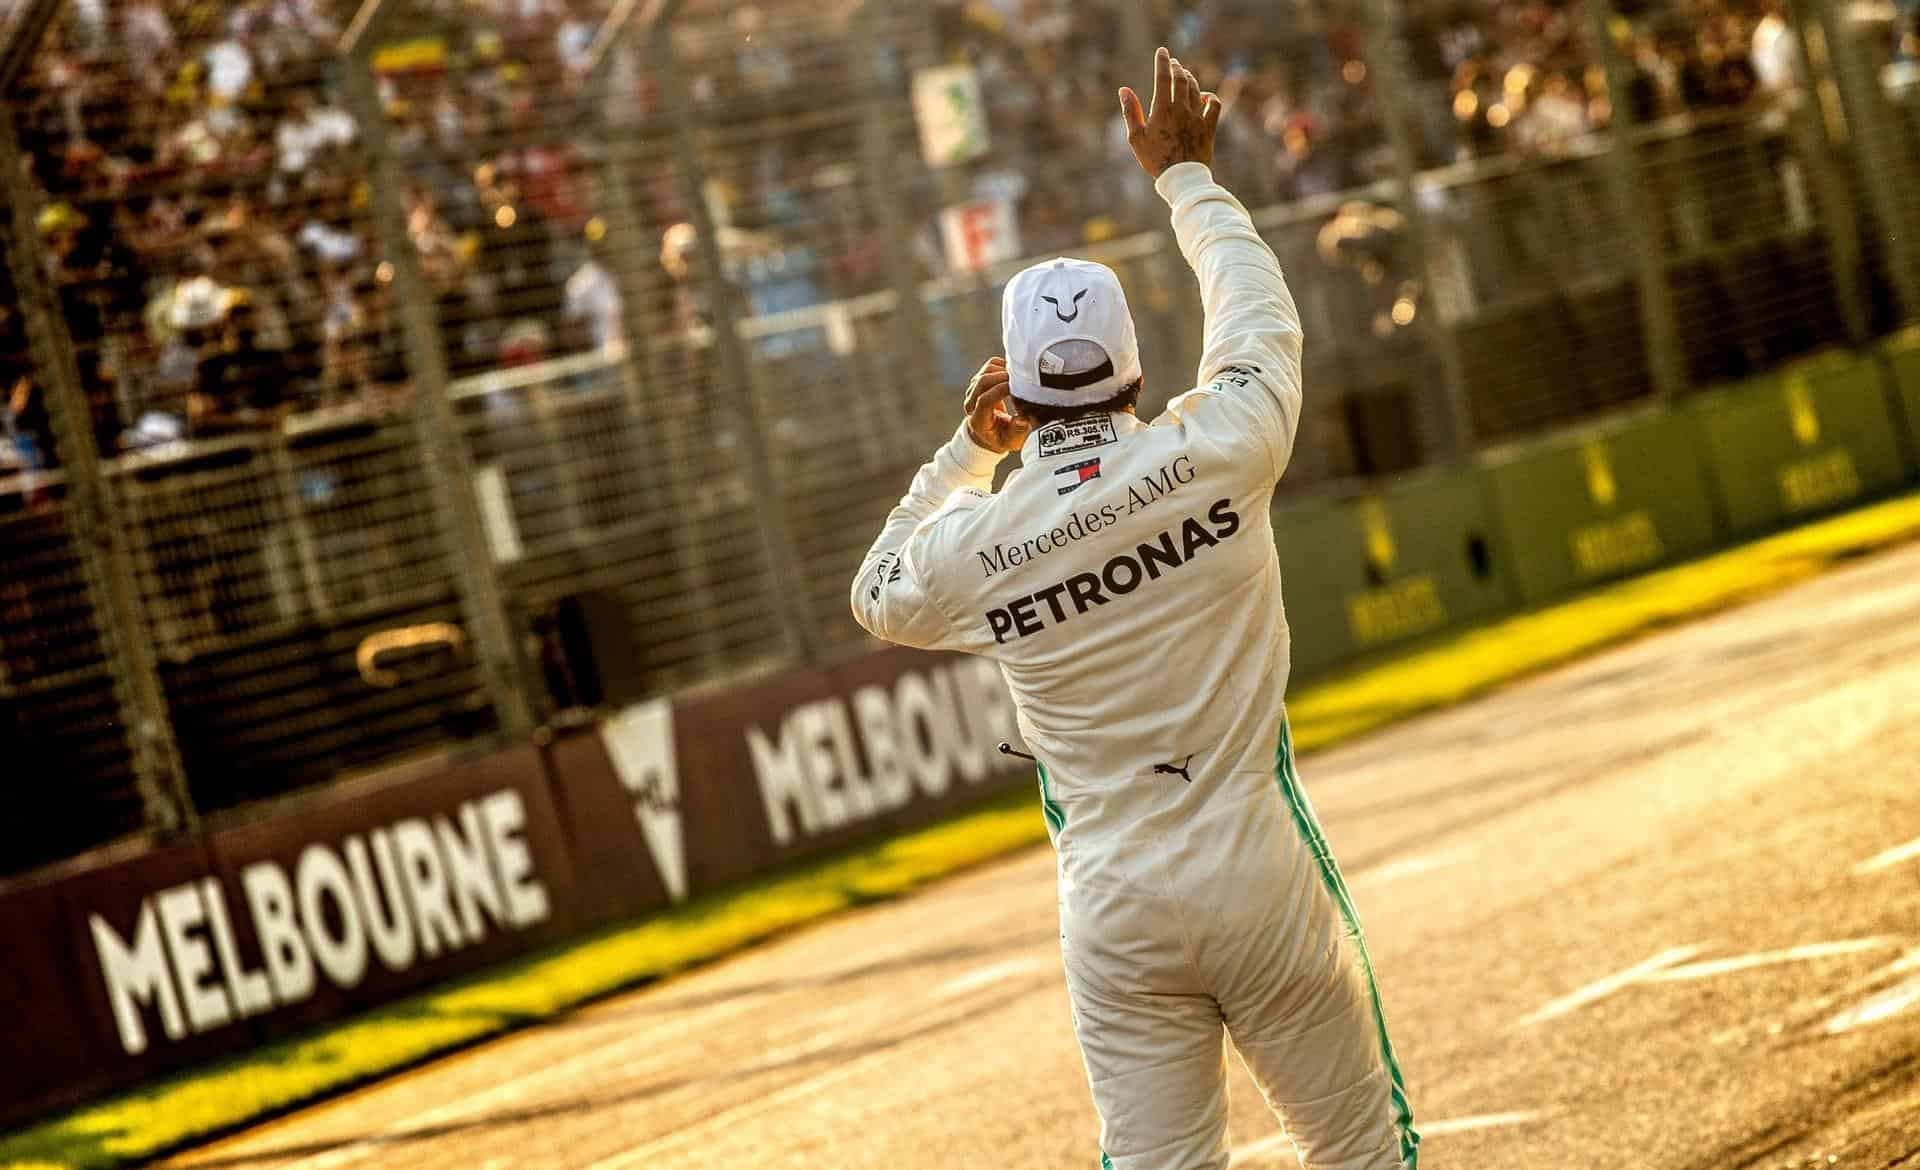 Lewis Hamilton Mercedes Australian GP F1 2019 after qualifying Photo Daimler Edited by MAXF1net